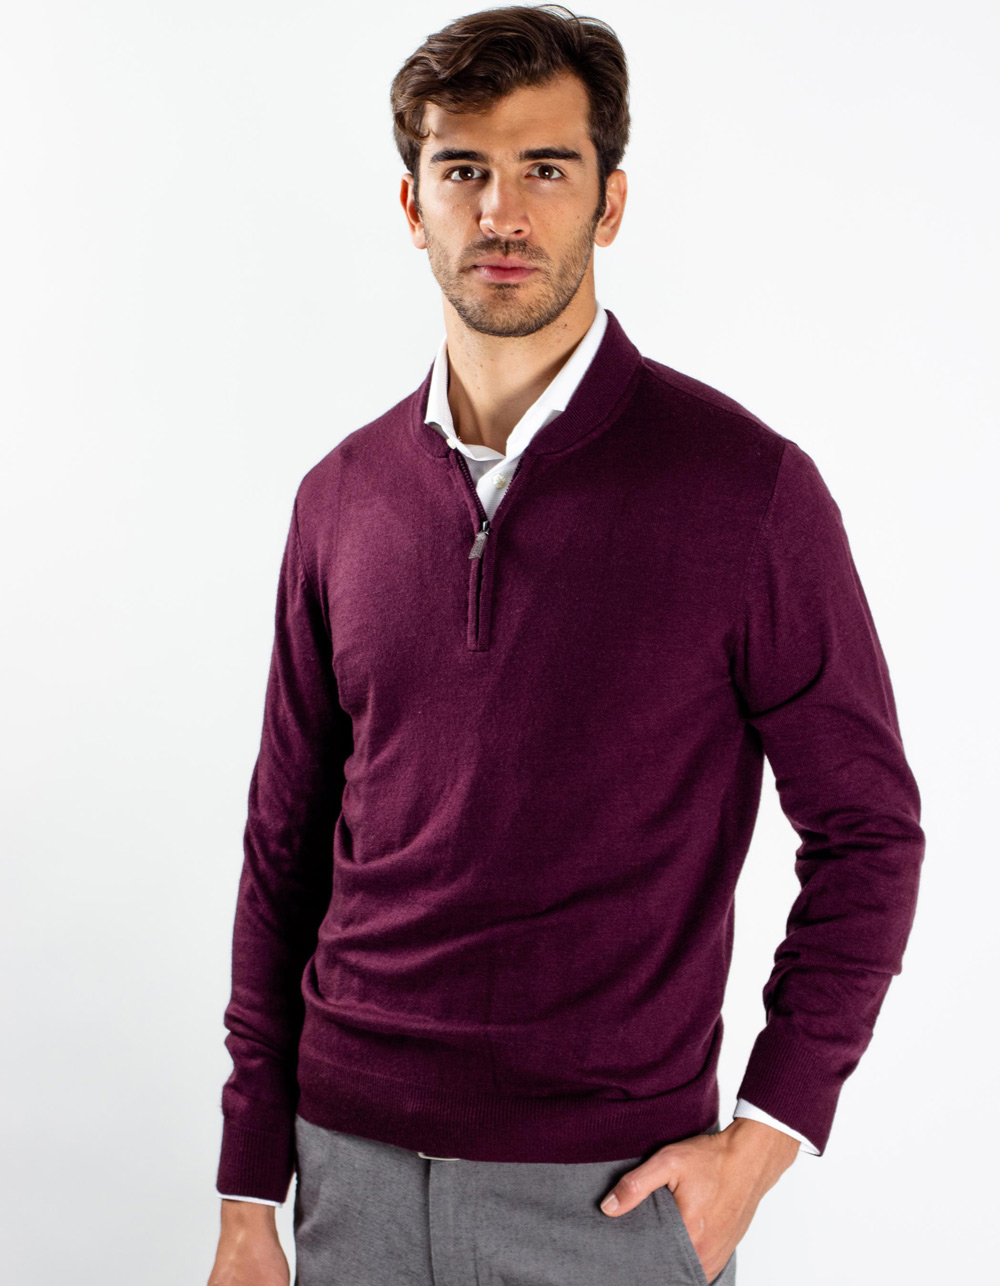 Maroon neck sweater with zip